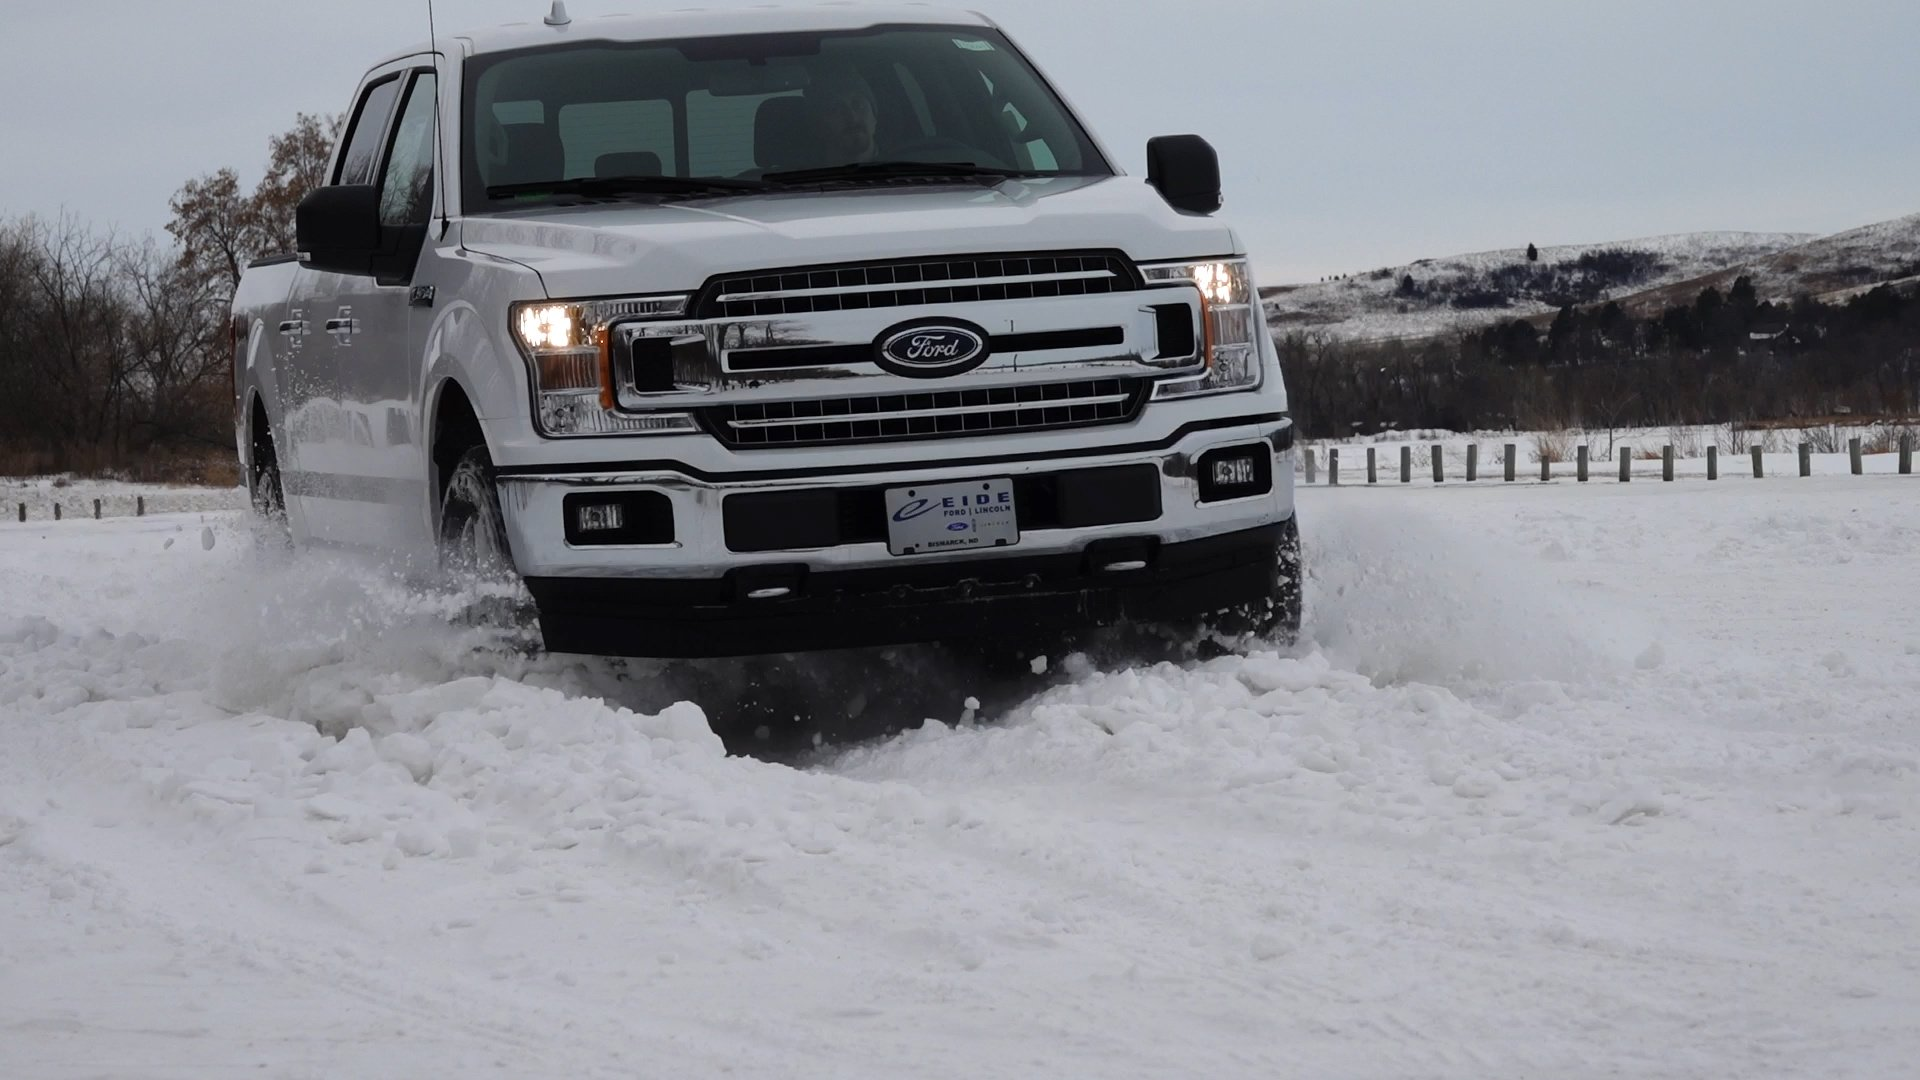 Ready to handle the snow in Bismarck? Even if you don't have a big F-150 you can drive safely this winter!